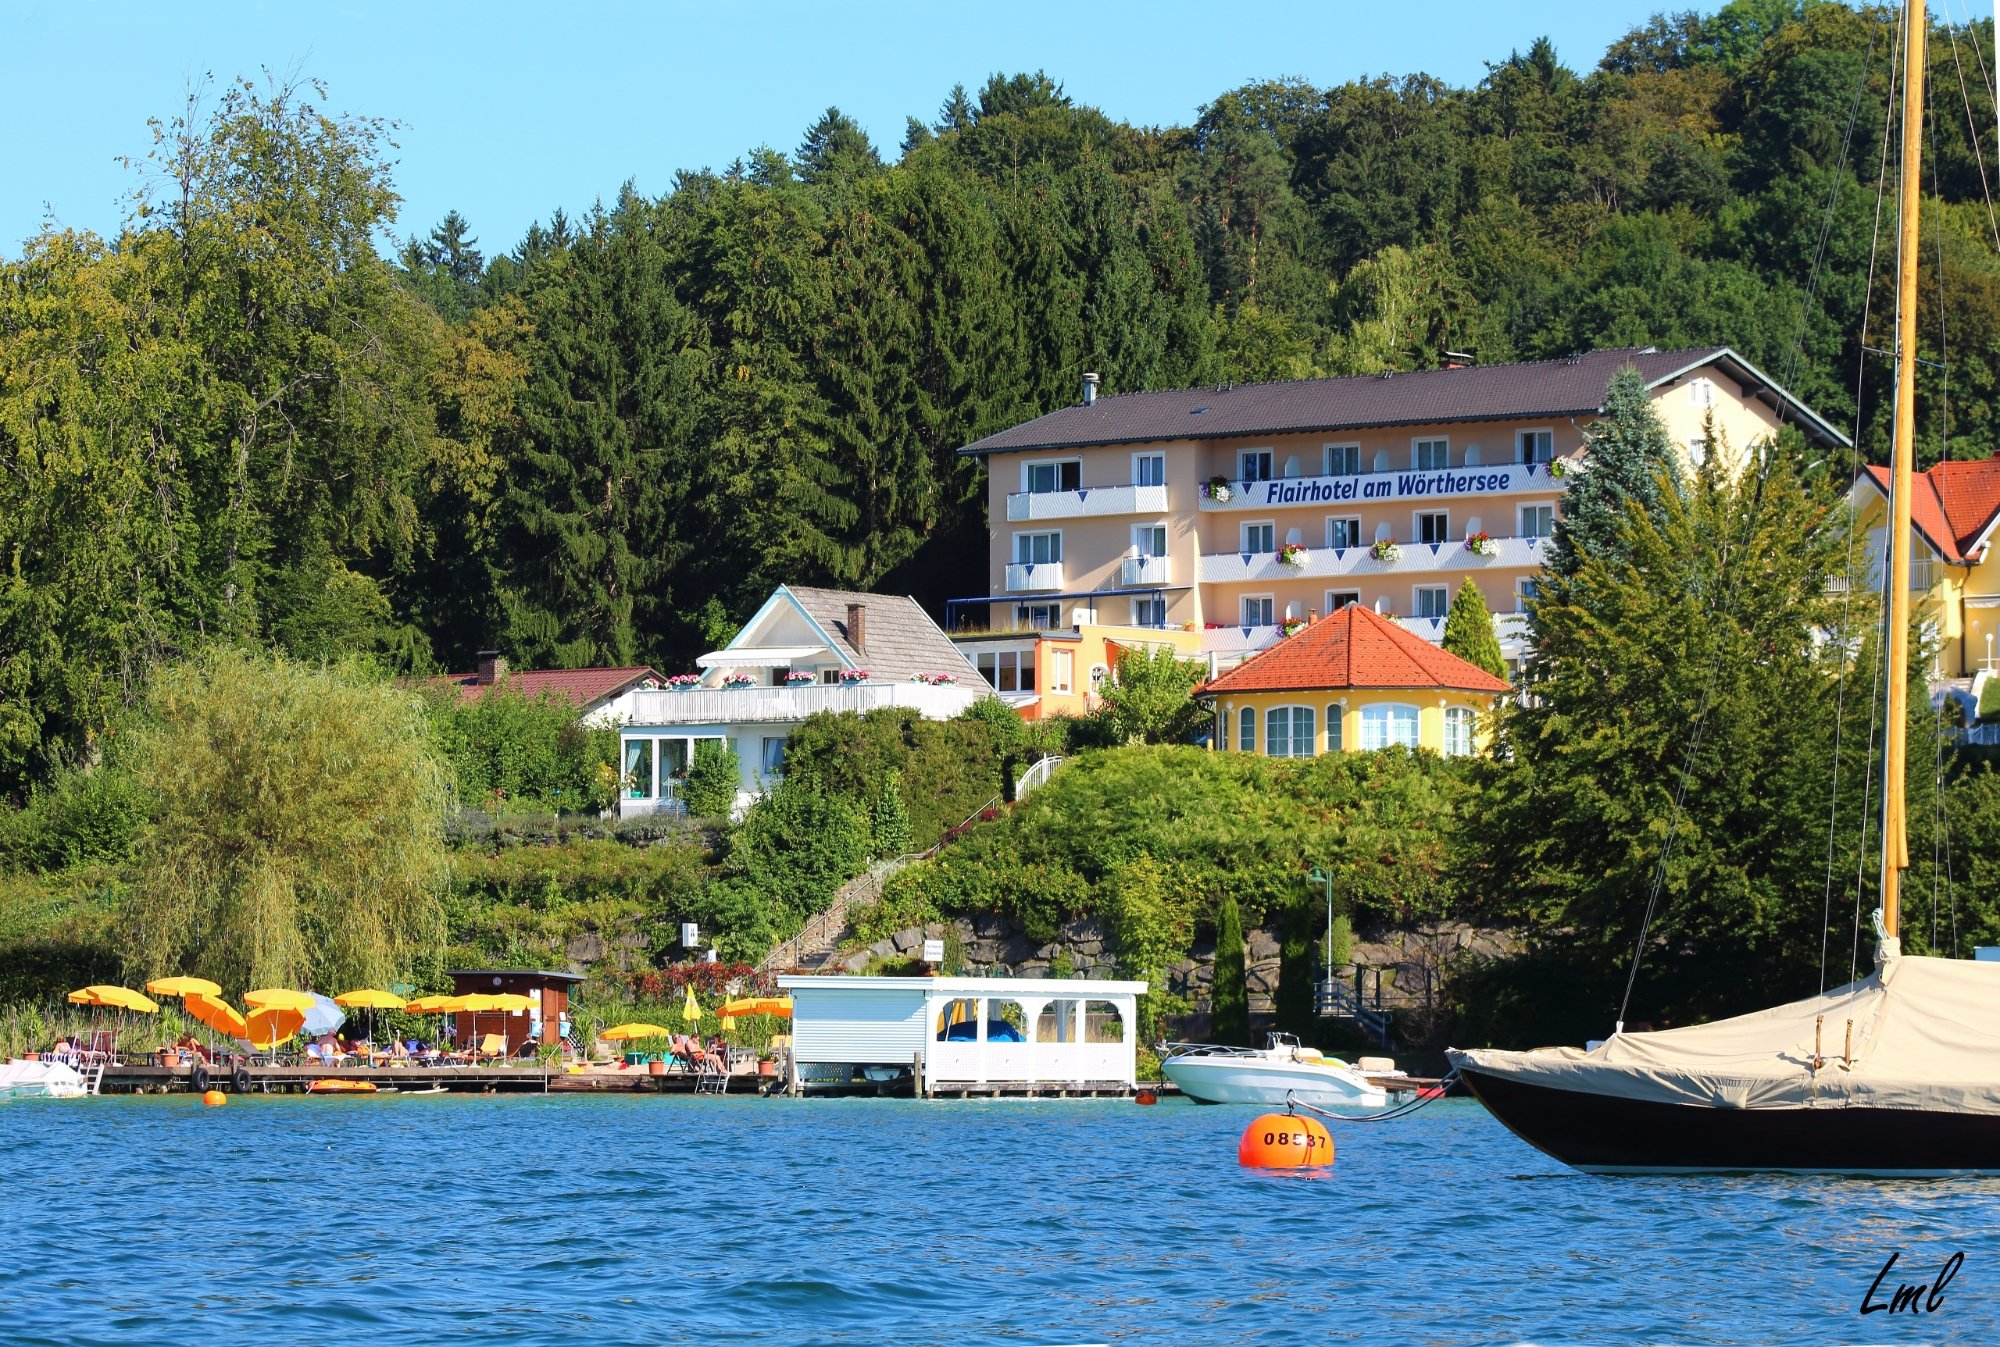 Flairhotel am Woerthersee